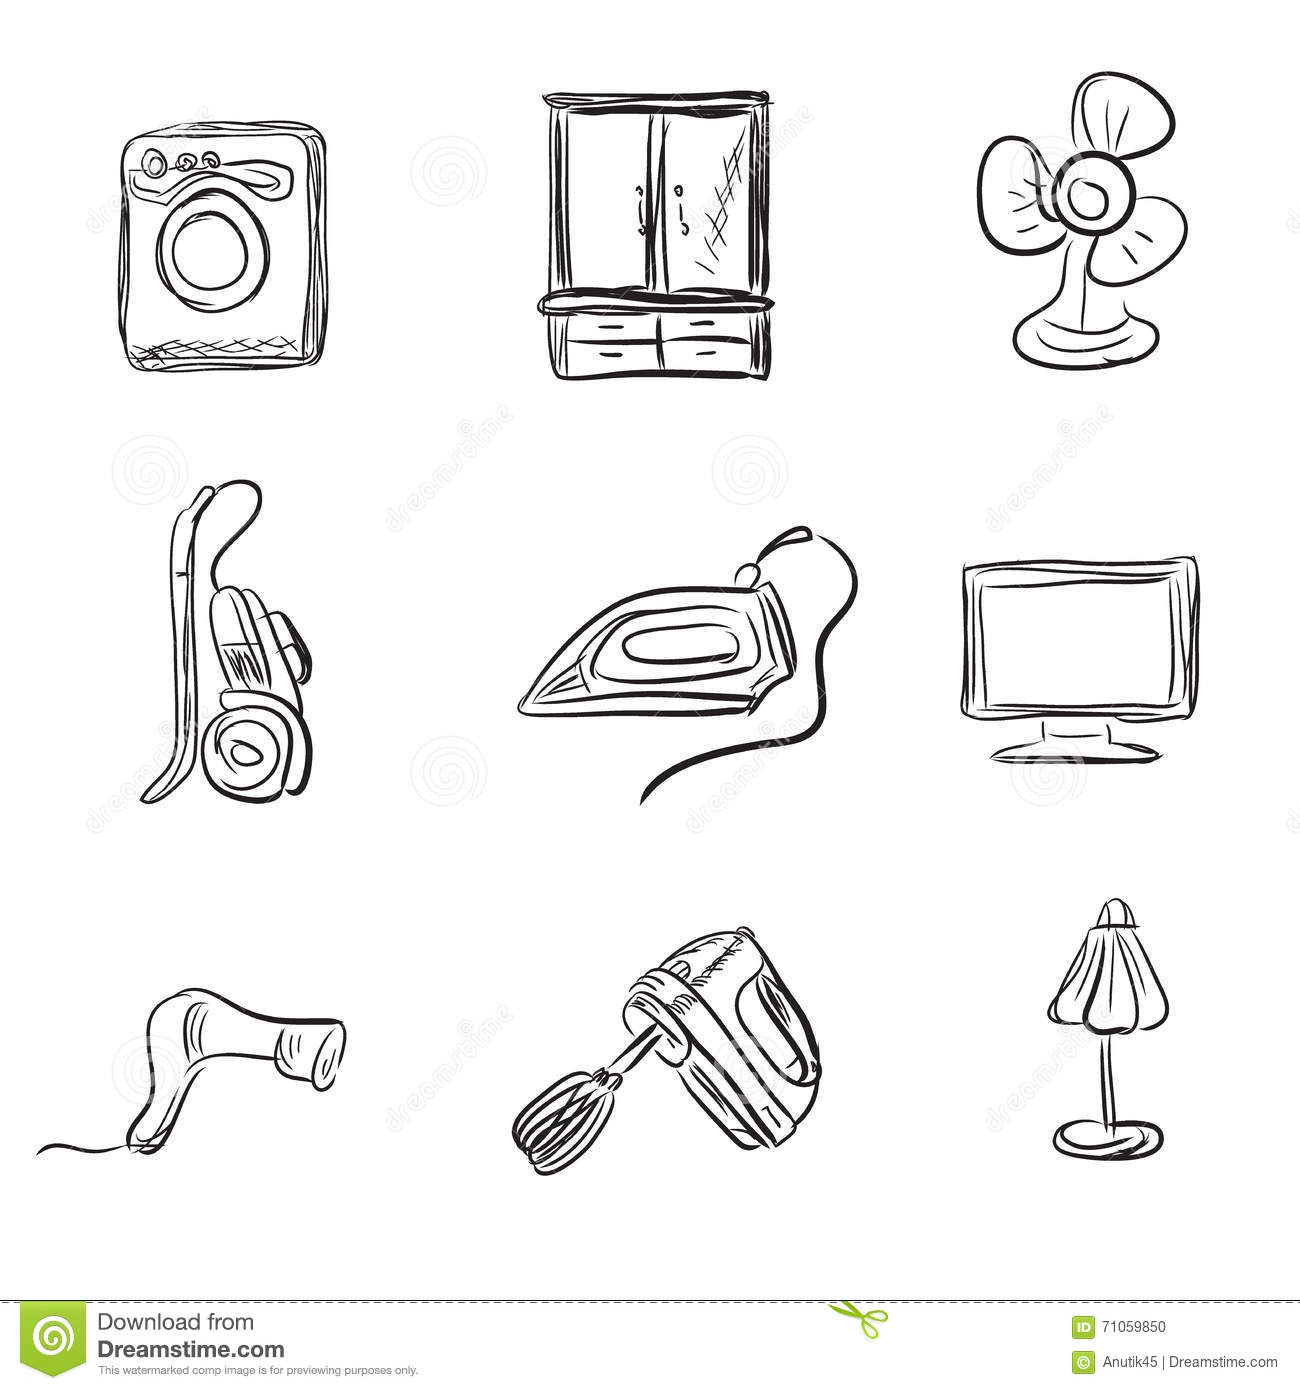 Illustration household appliances stock photo for Household appliances design